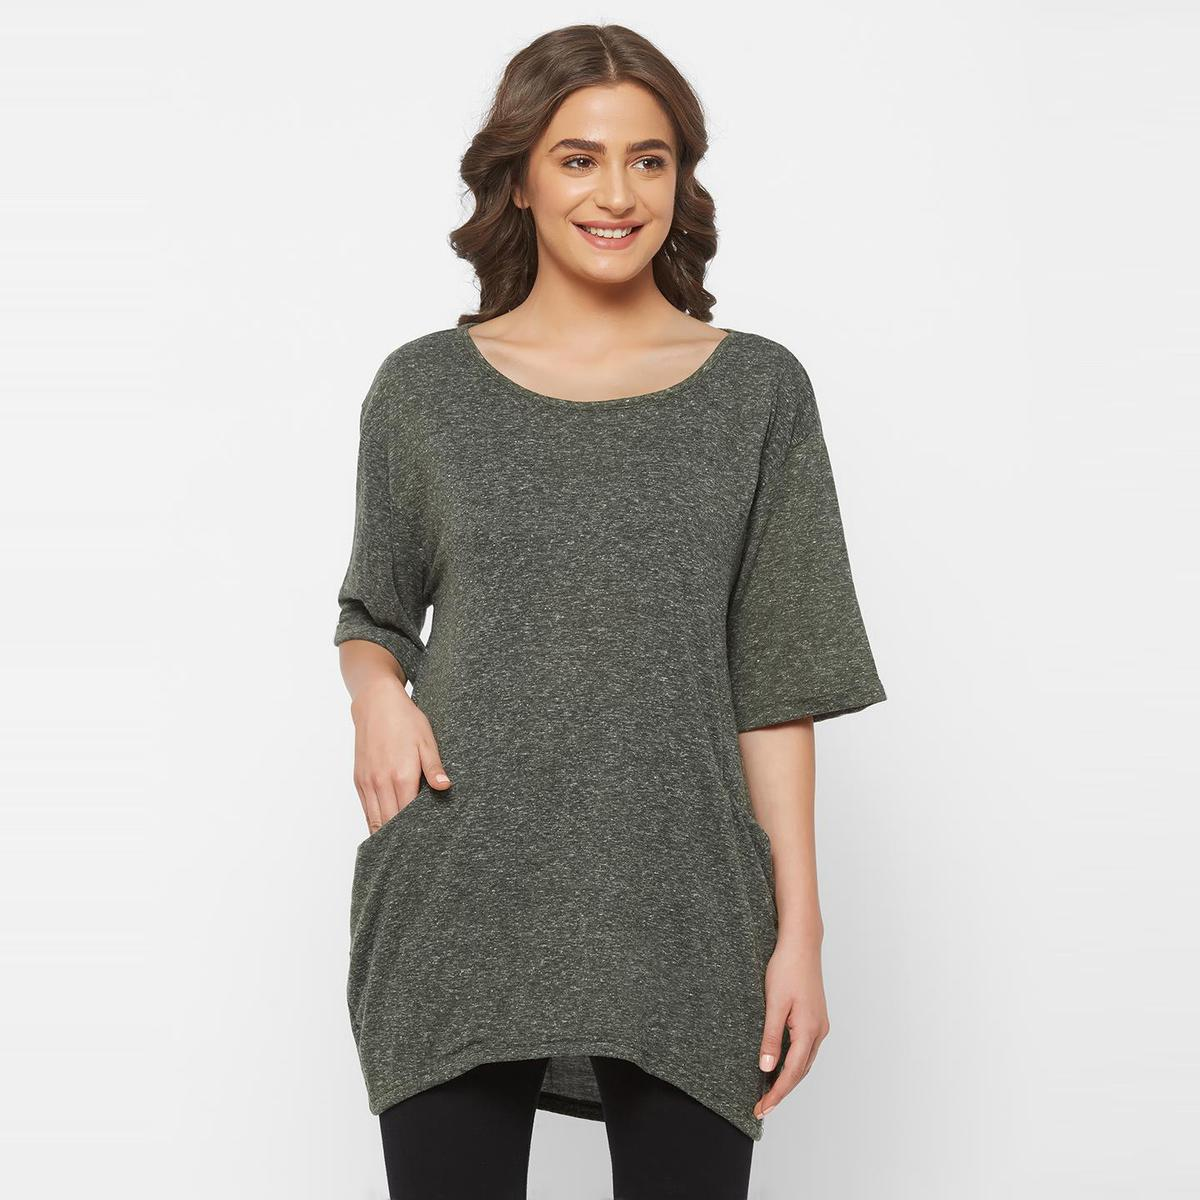 Mystere Paris - Olive Colored Casual Cotton Boxy Tshirt